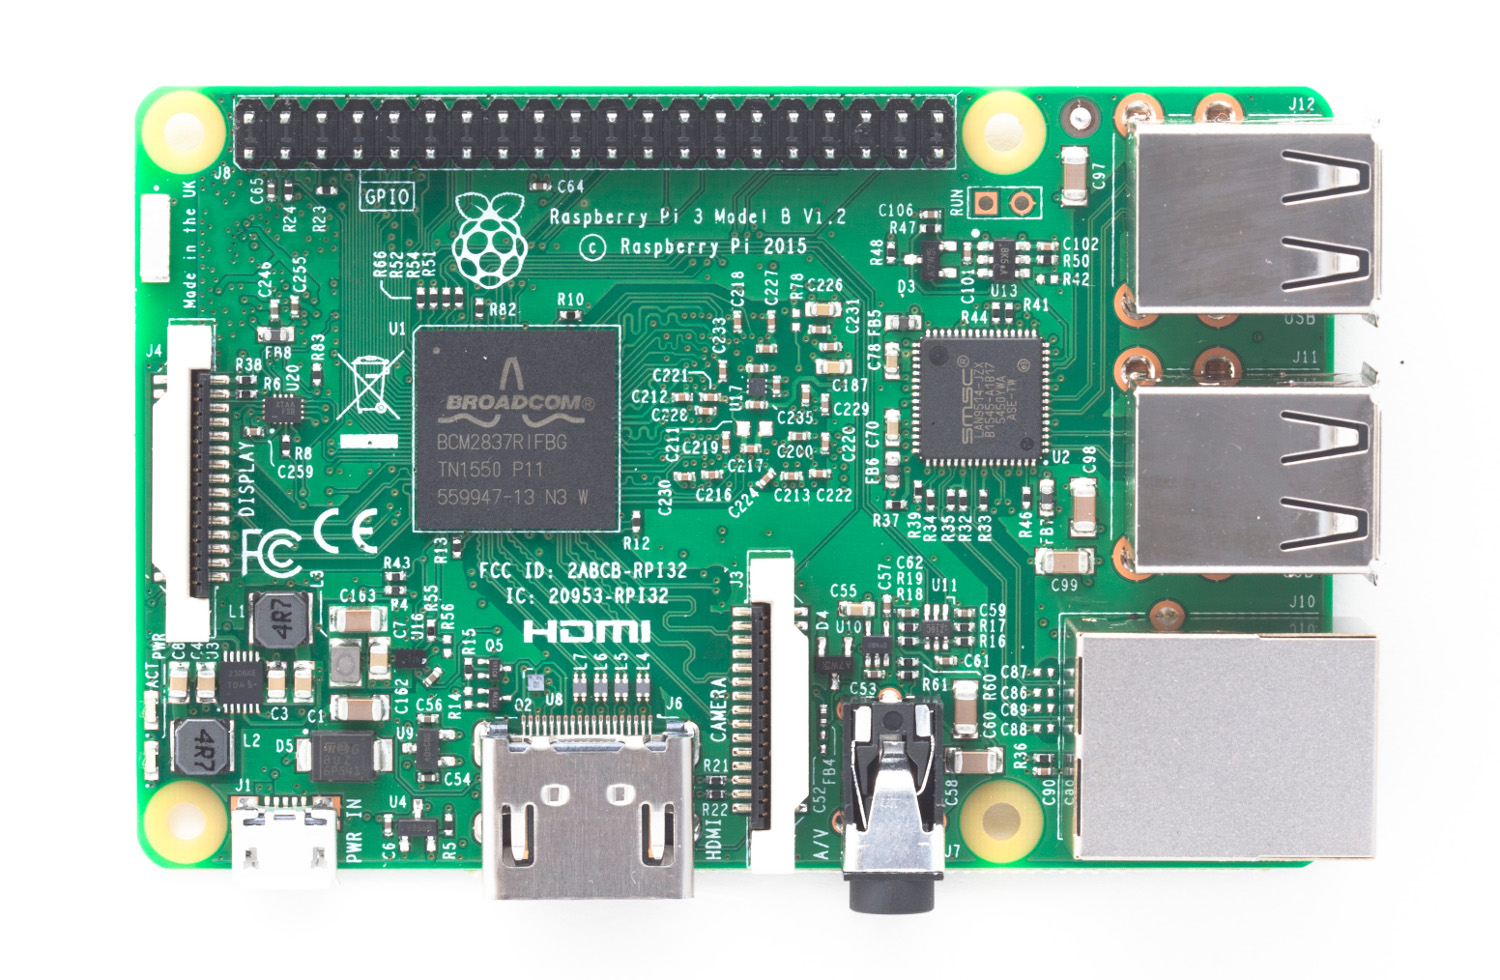 The Raspberry Pi 3 in its full glory